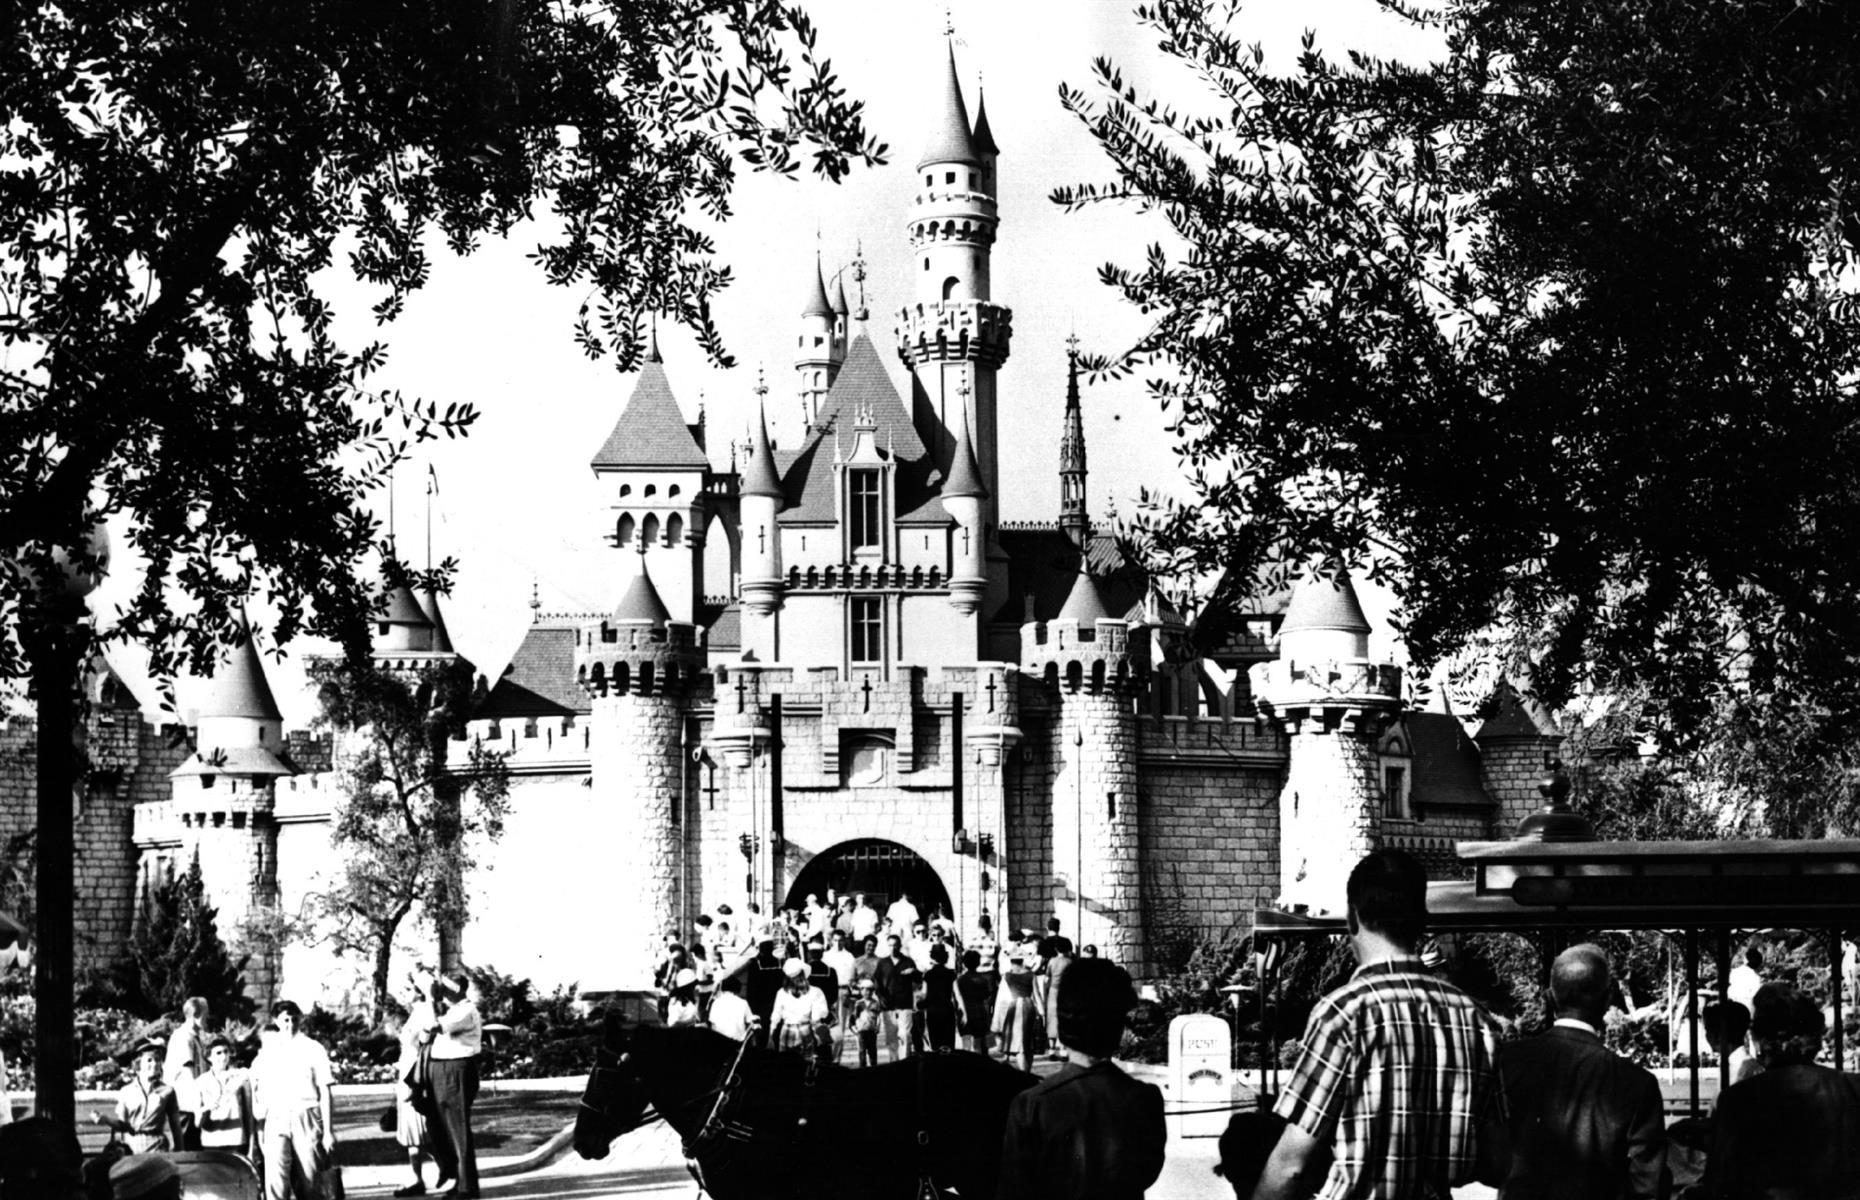 Slide 26 of 48: Walt Disney's Disneyland (renamed Disneyland Park in the 1990s) opened on 17 July 1955. He originally wanted his theme park to be called Mickey Mouse Park.On the opening day, 28,000 people visited the theme park which featured its now-famous parades and 20 different attractions including Frontierland, a recreation of the Old West, pictured here in 1955. There was also the Sleeping Beauty Castlewhich soon became one of the USA's most recognizable tourist attractions. Seemore historic pictures of Disney's parks here.